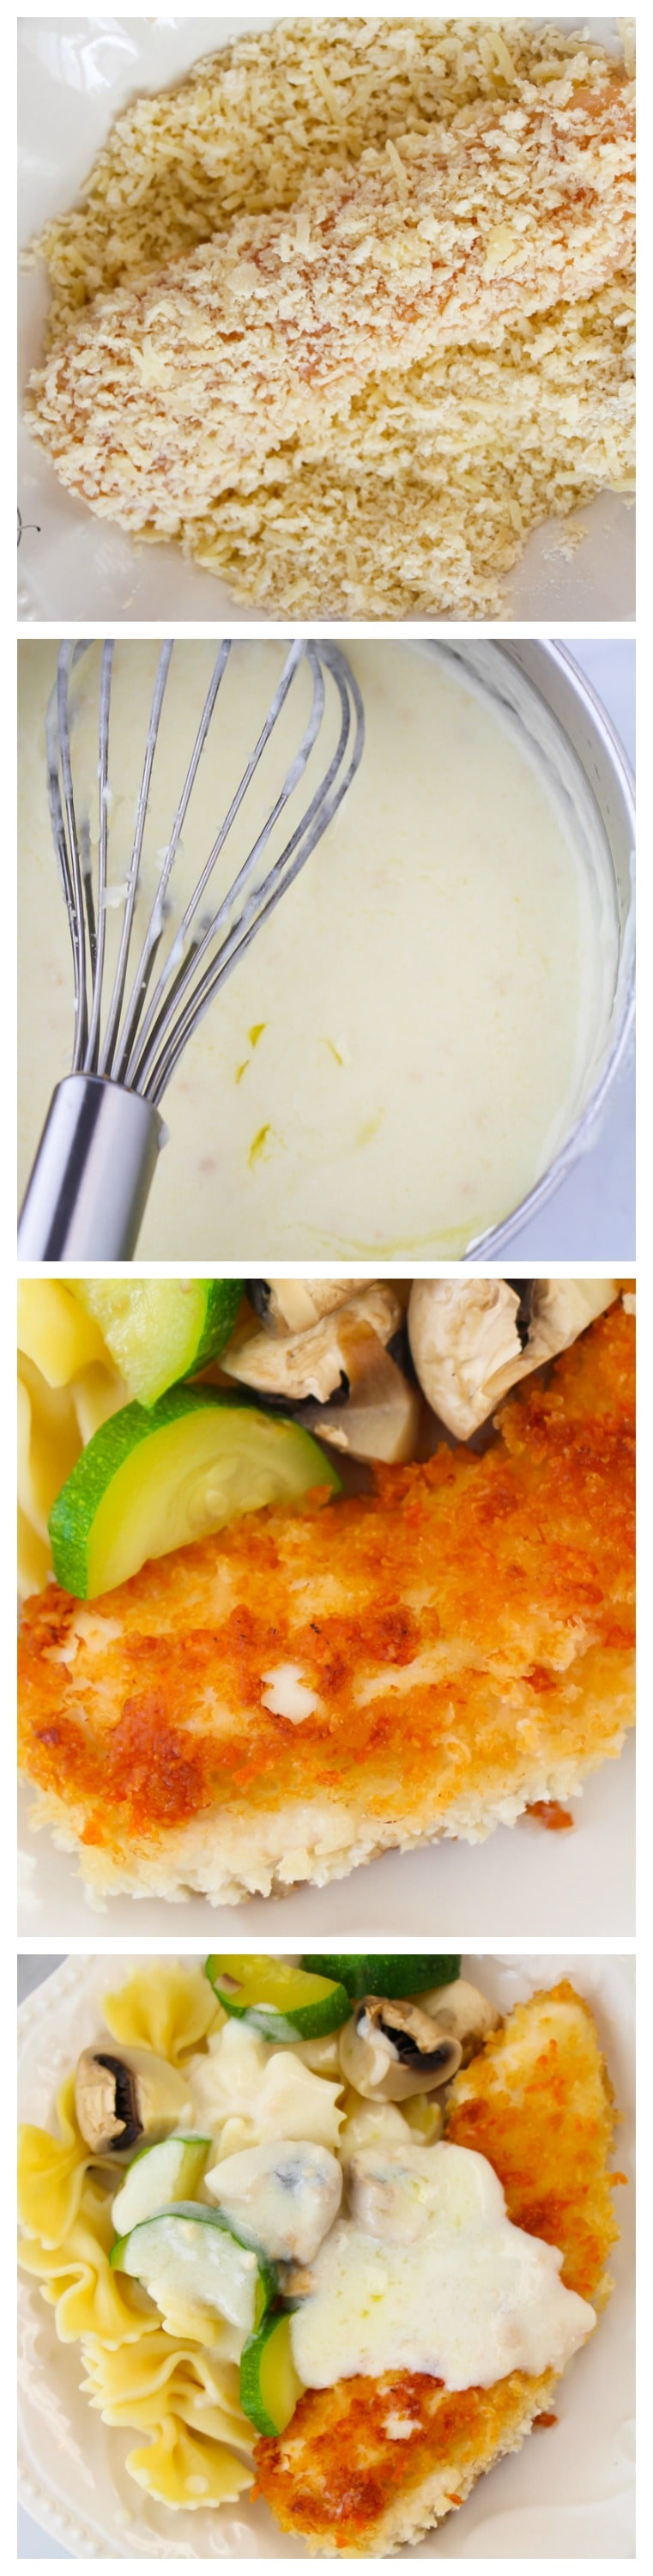 Copycat Olive Garden Parmesan Crusted Chicken | Perfect Italian Recipe for Dinner Tonight | Chicken Parmesan with Sauce